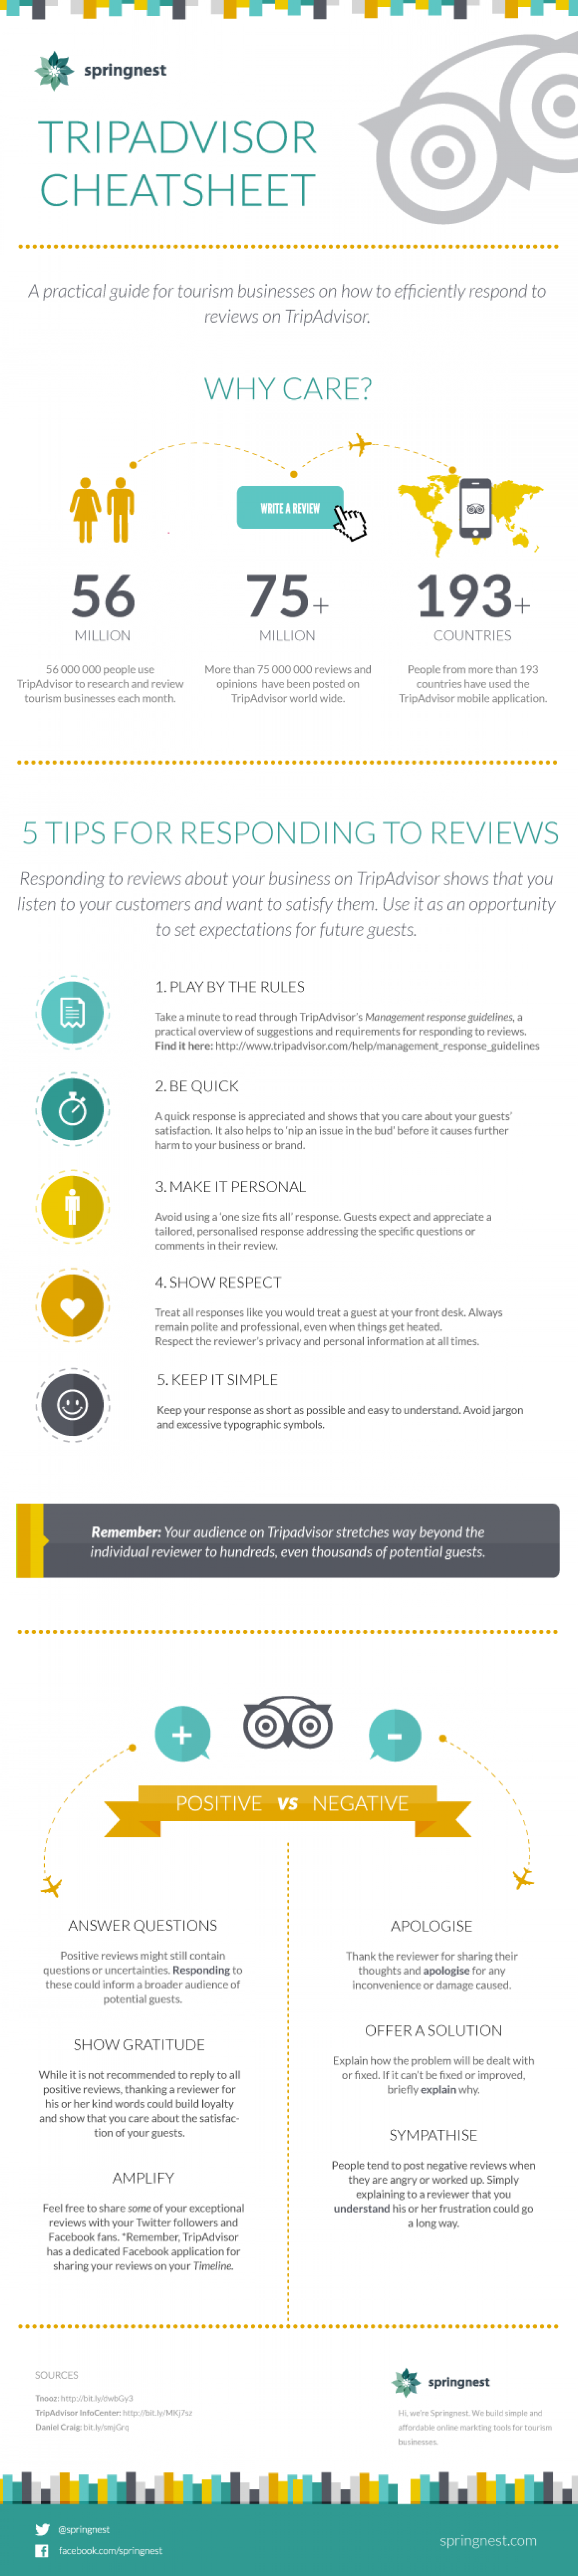 Responding to reviews on TripAdvisor - a practical guide for hotels Infographic